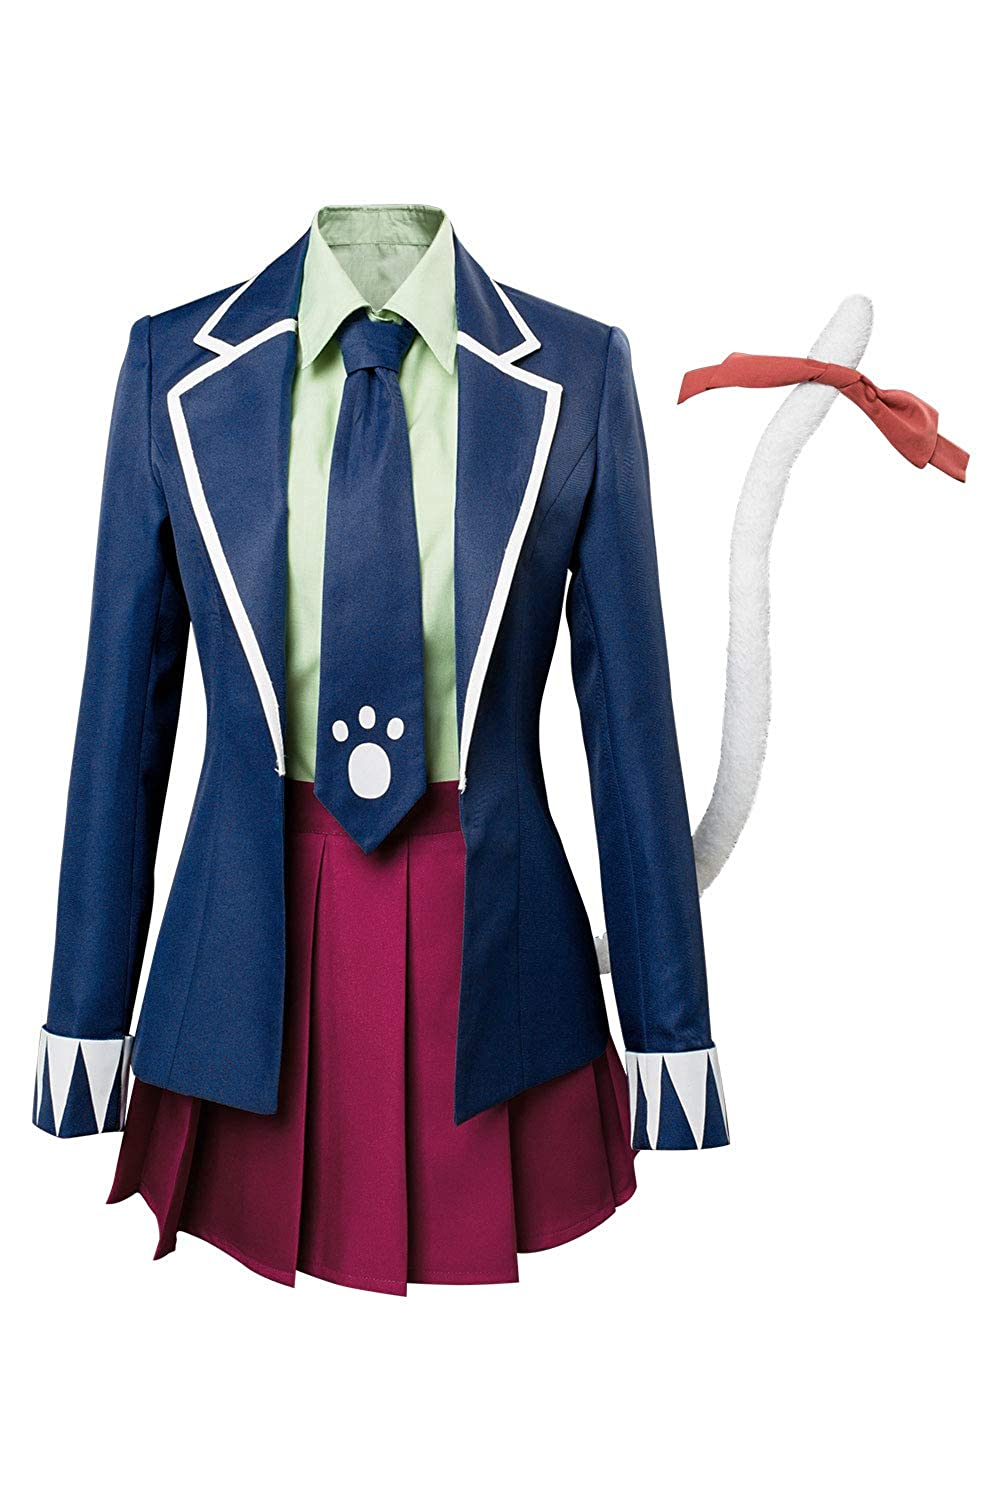 Style 1 XL Xiemushop Anime Cosplay Costume Filles Uniforme Costume Jupe Courte Hommes Anime Cosplay Chemise Tablier courtes Costume